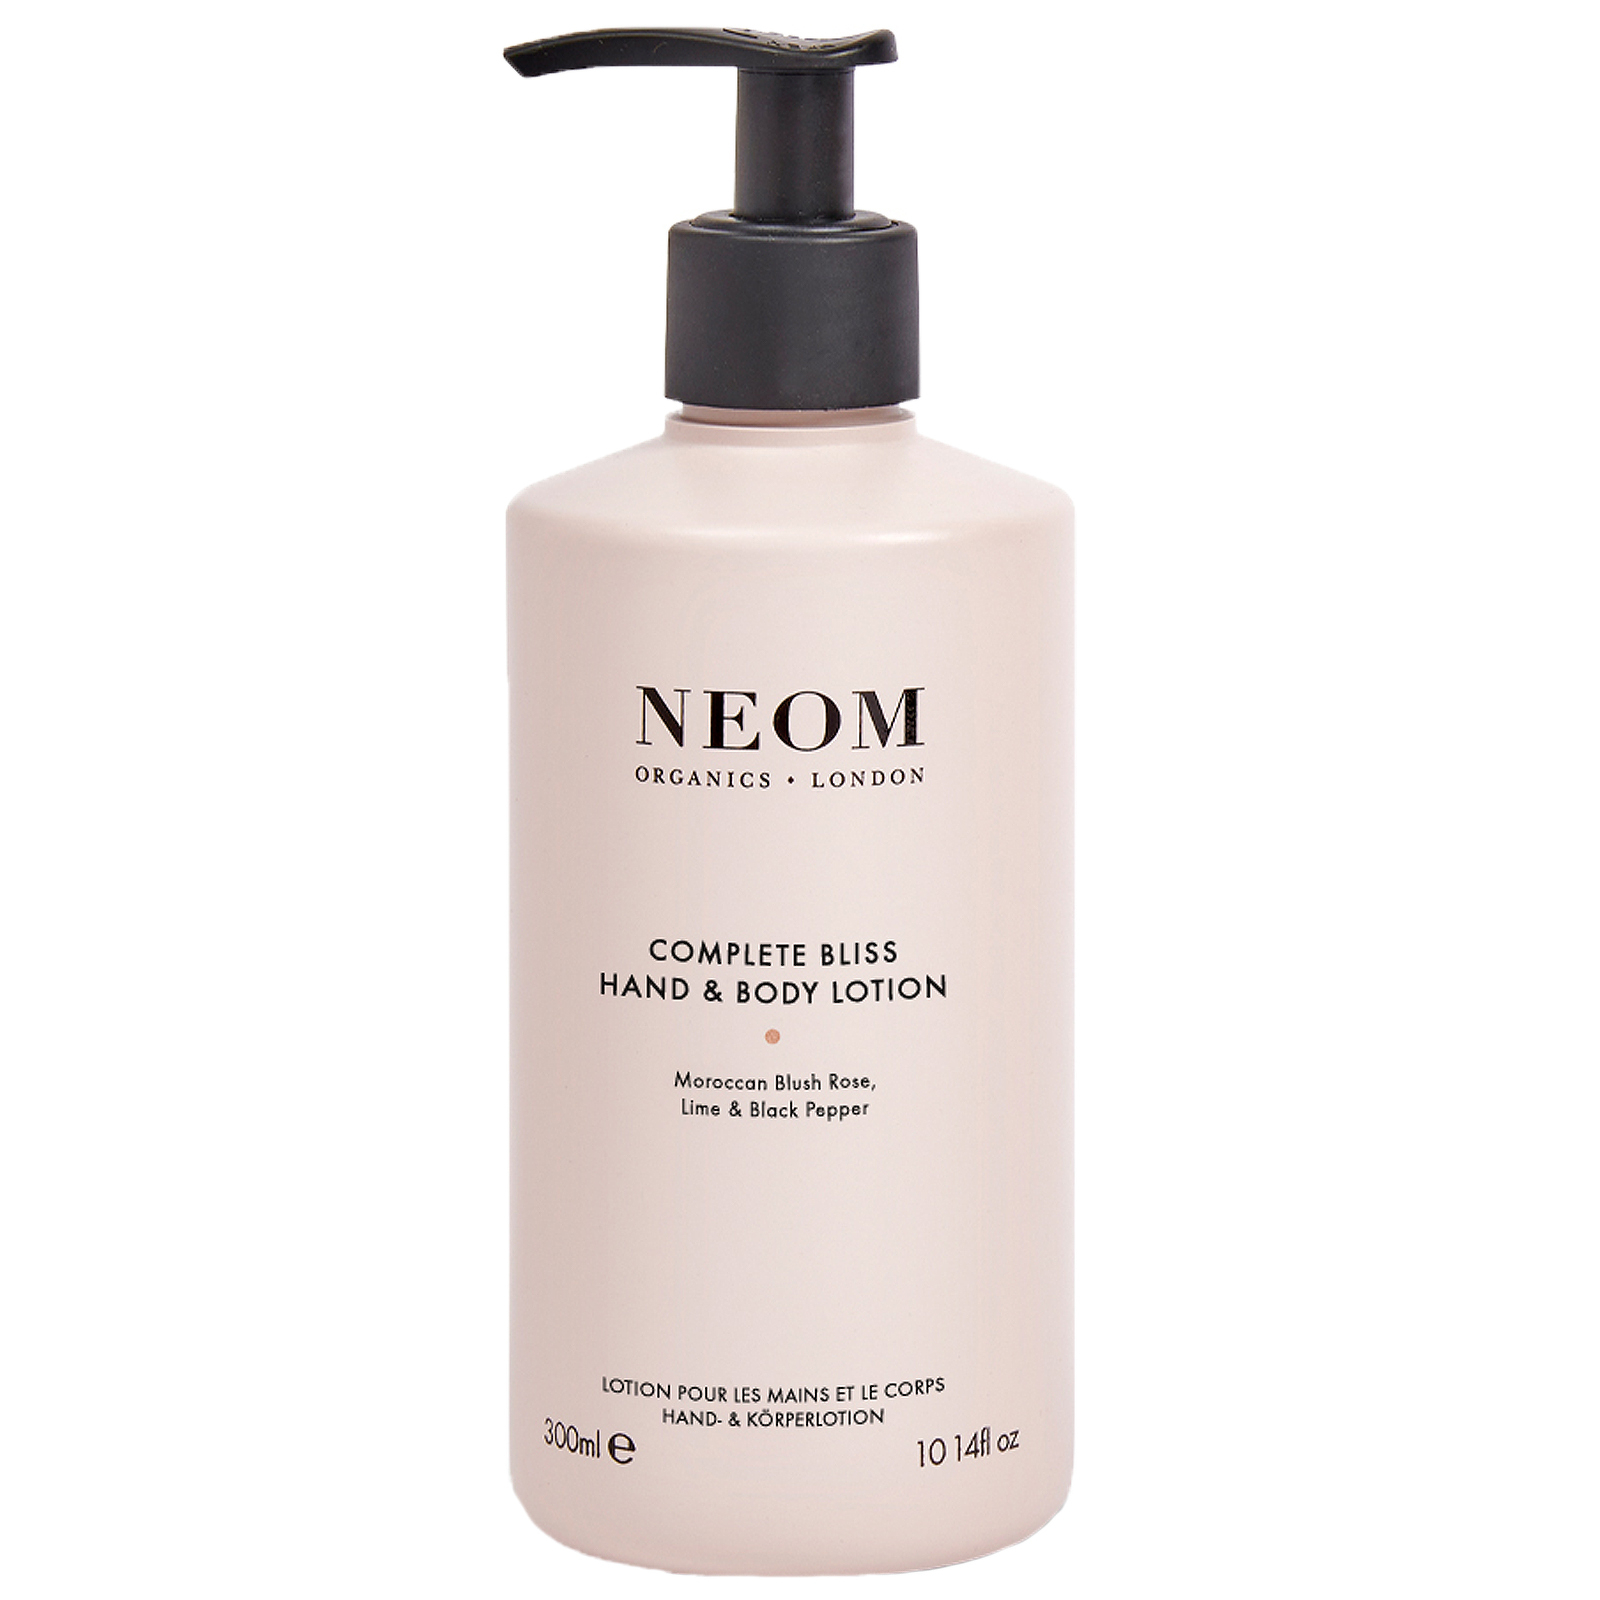 Neom Organics London Scent To De-Stress Complete Bliss Body & Hand Lotion 300ml